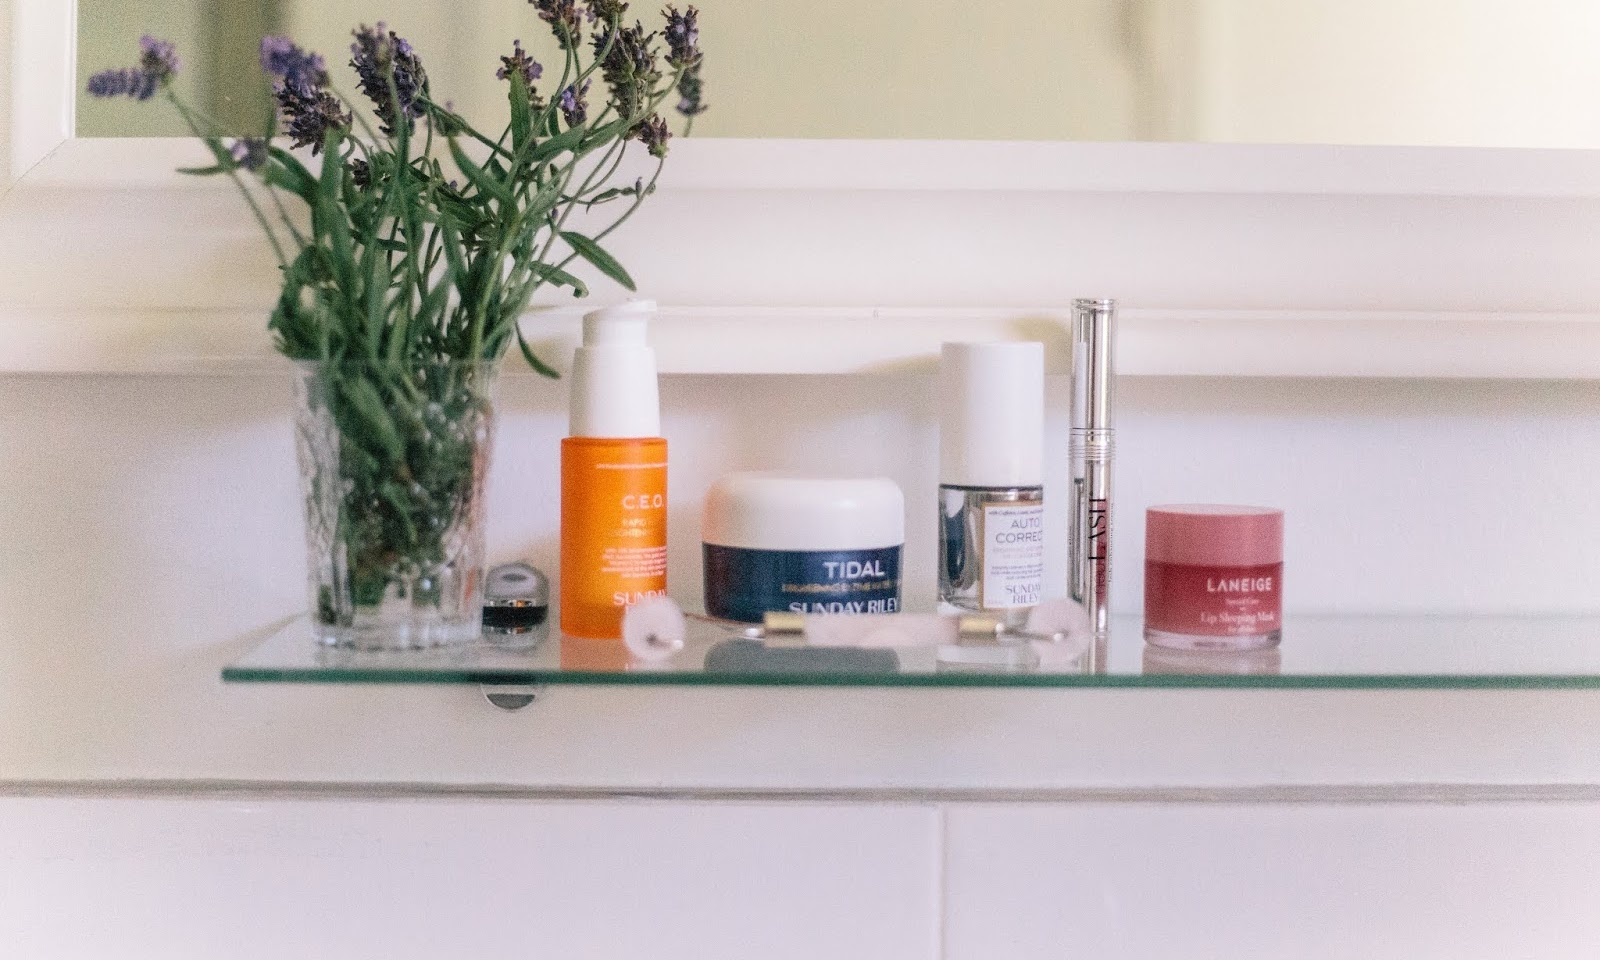 My Current Summer Skincare Routine